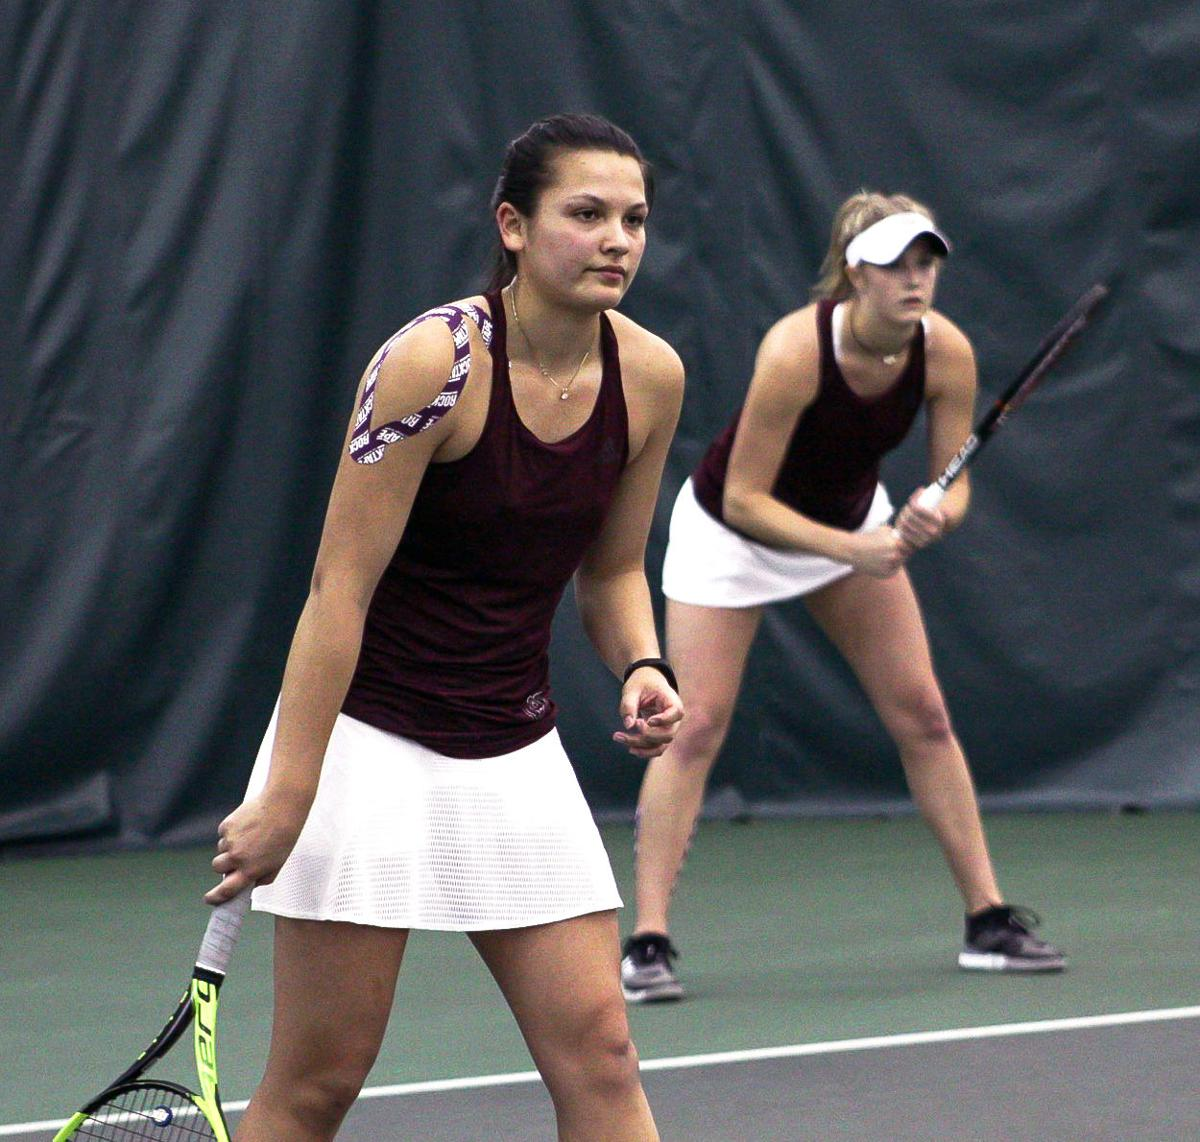 Anna Alons and Ellie Burger prepare to return their opponent's serve